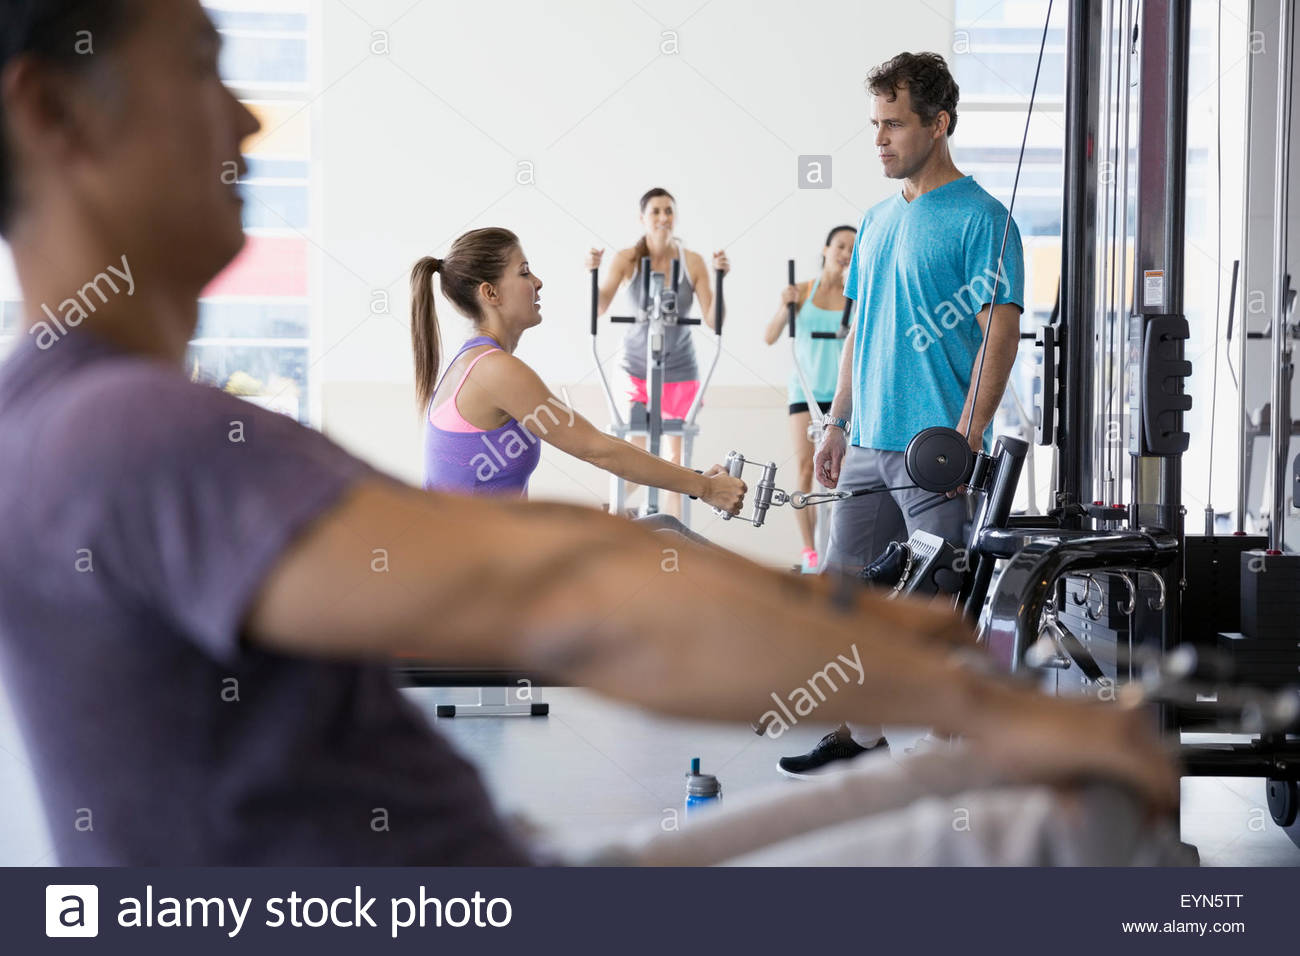 People working out at gym Stock Photo